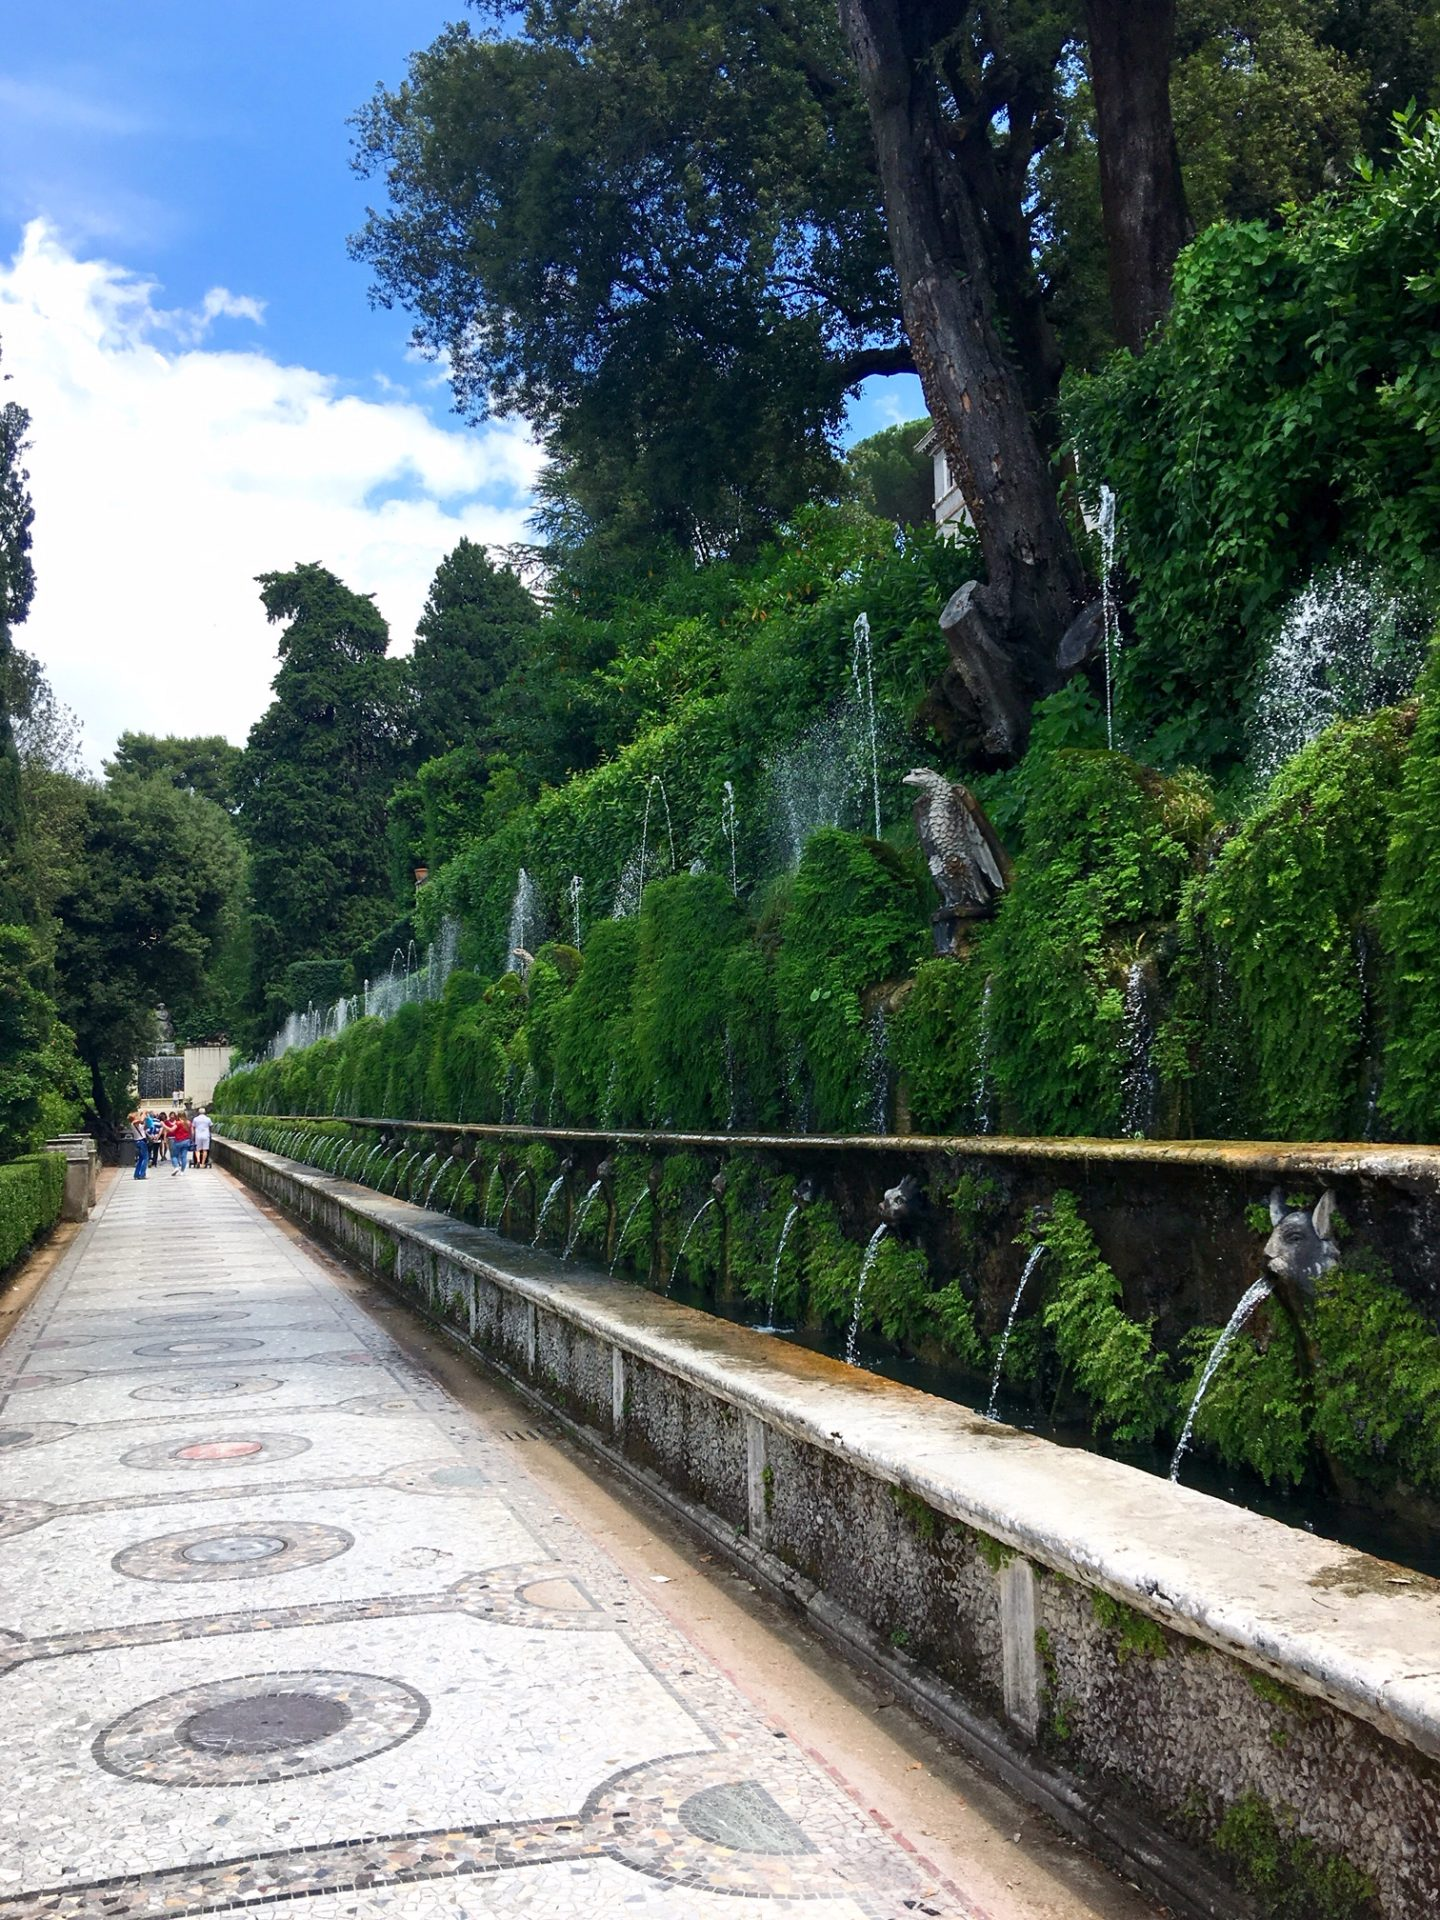 walkways lined with gargoyle fountains in the gardens at Villa d'Este in Tivoli